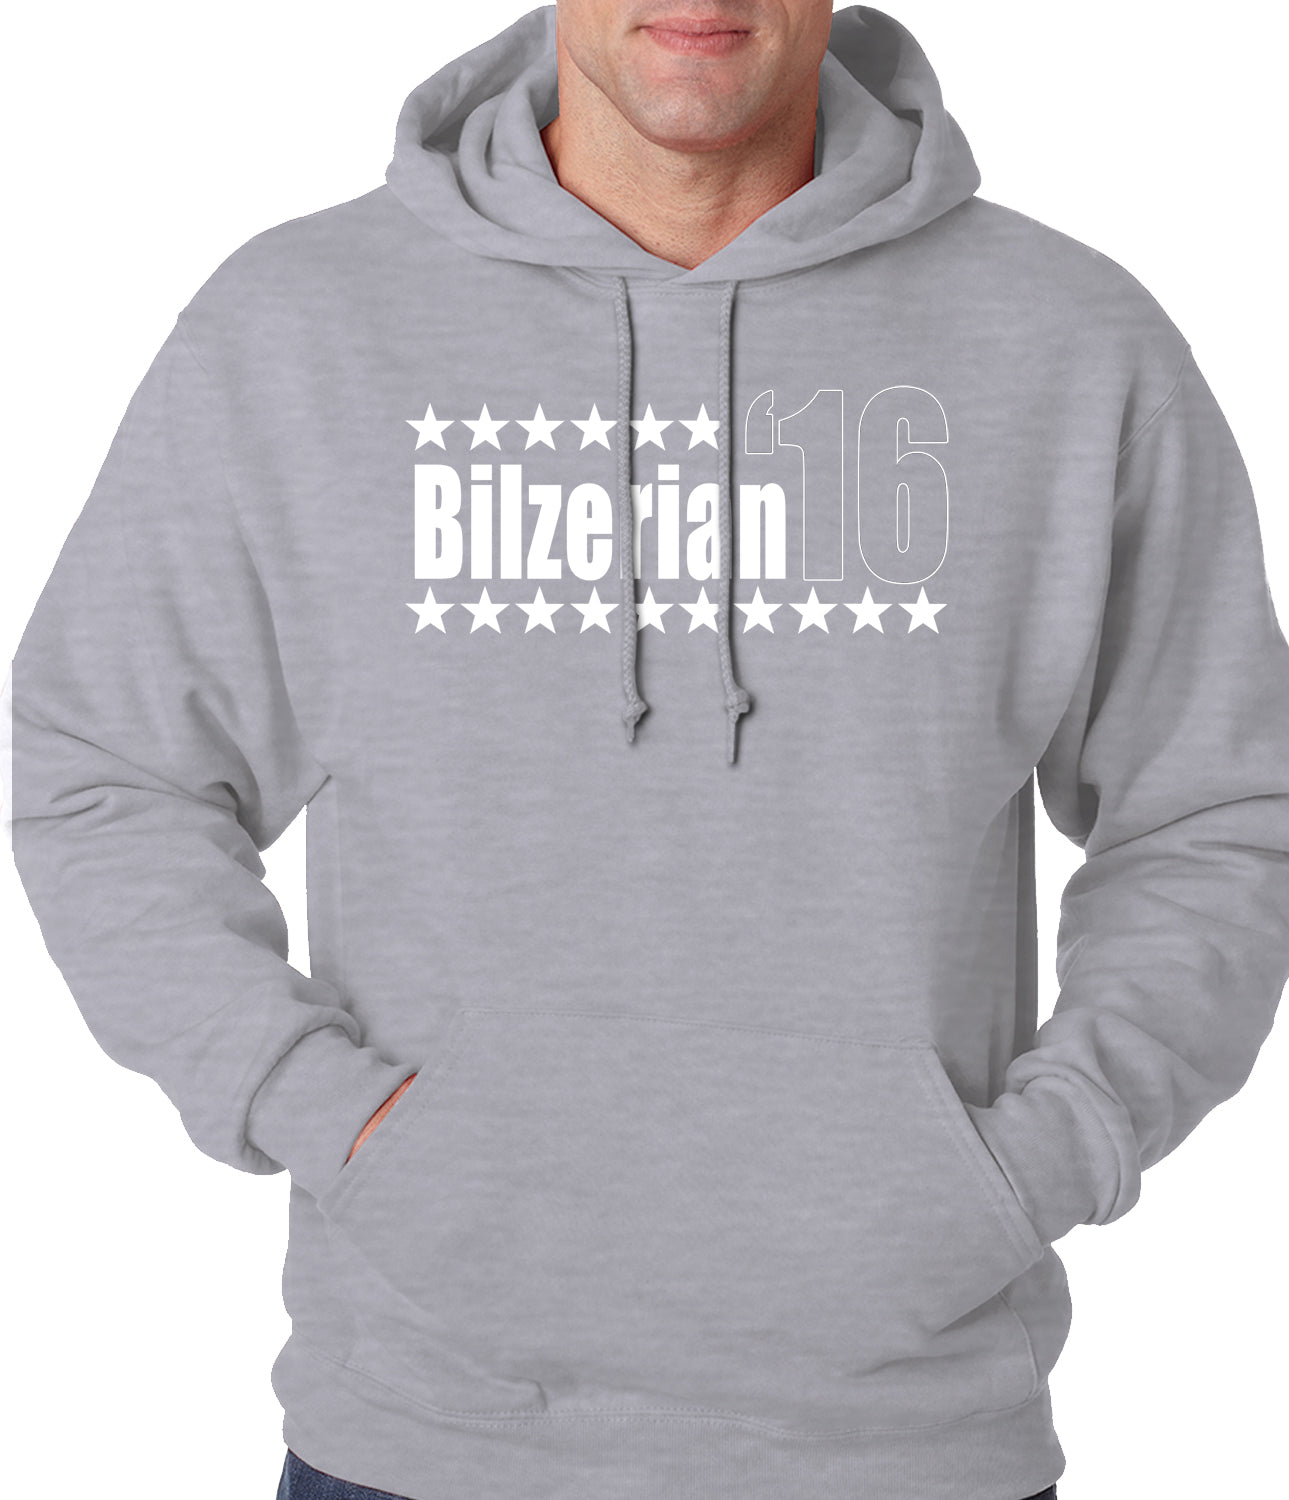 Bilzerian '16 - Vote For Bilzerian For President in 2016 Adult Hoodie